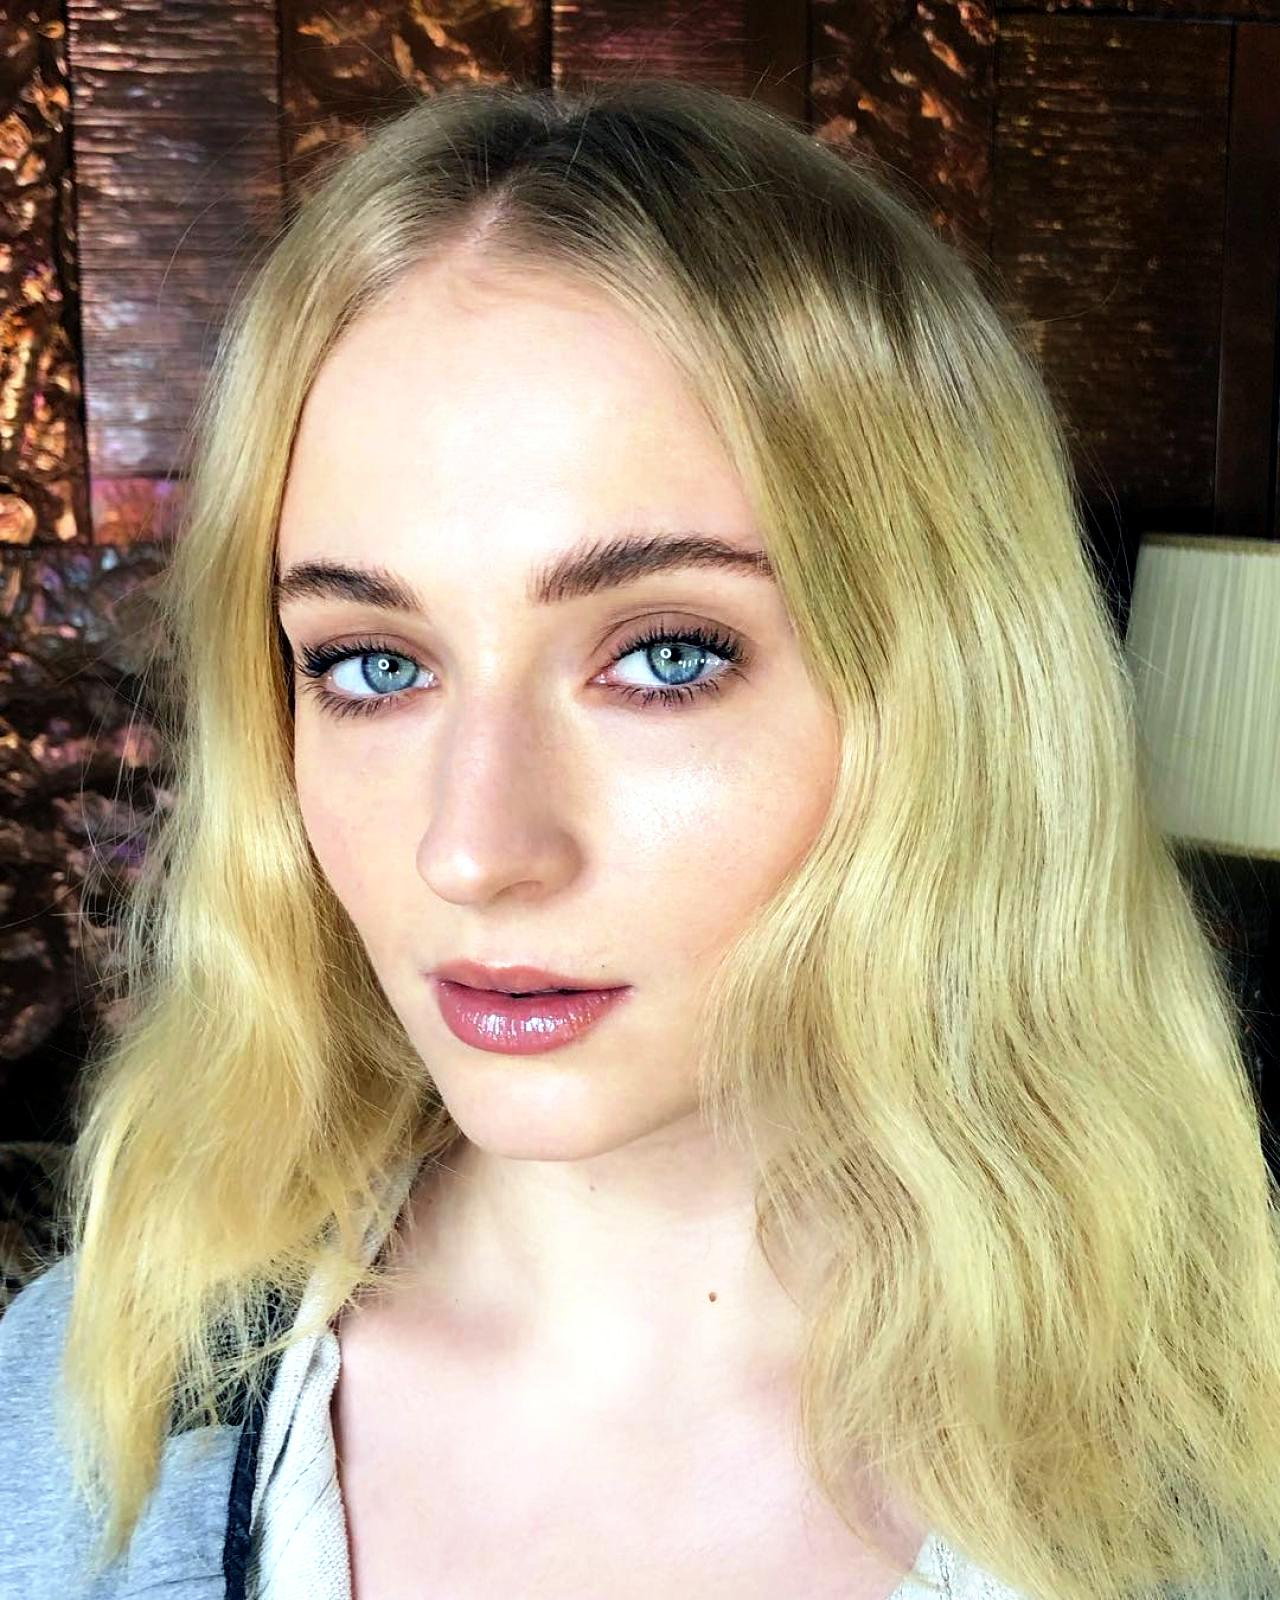 Sophie is gorgeous